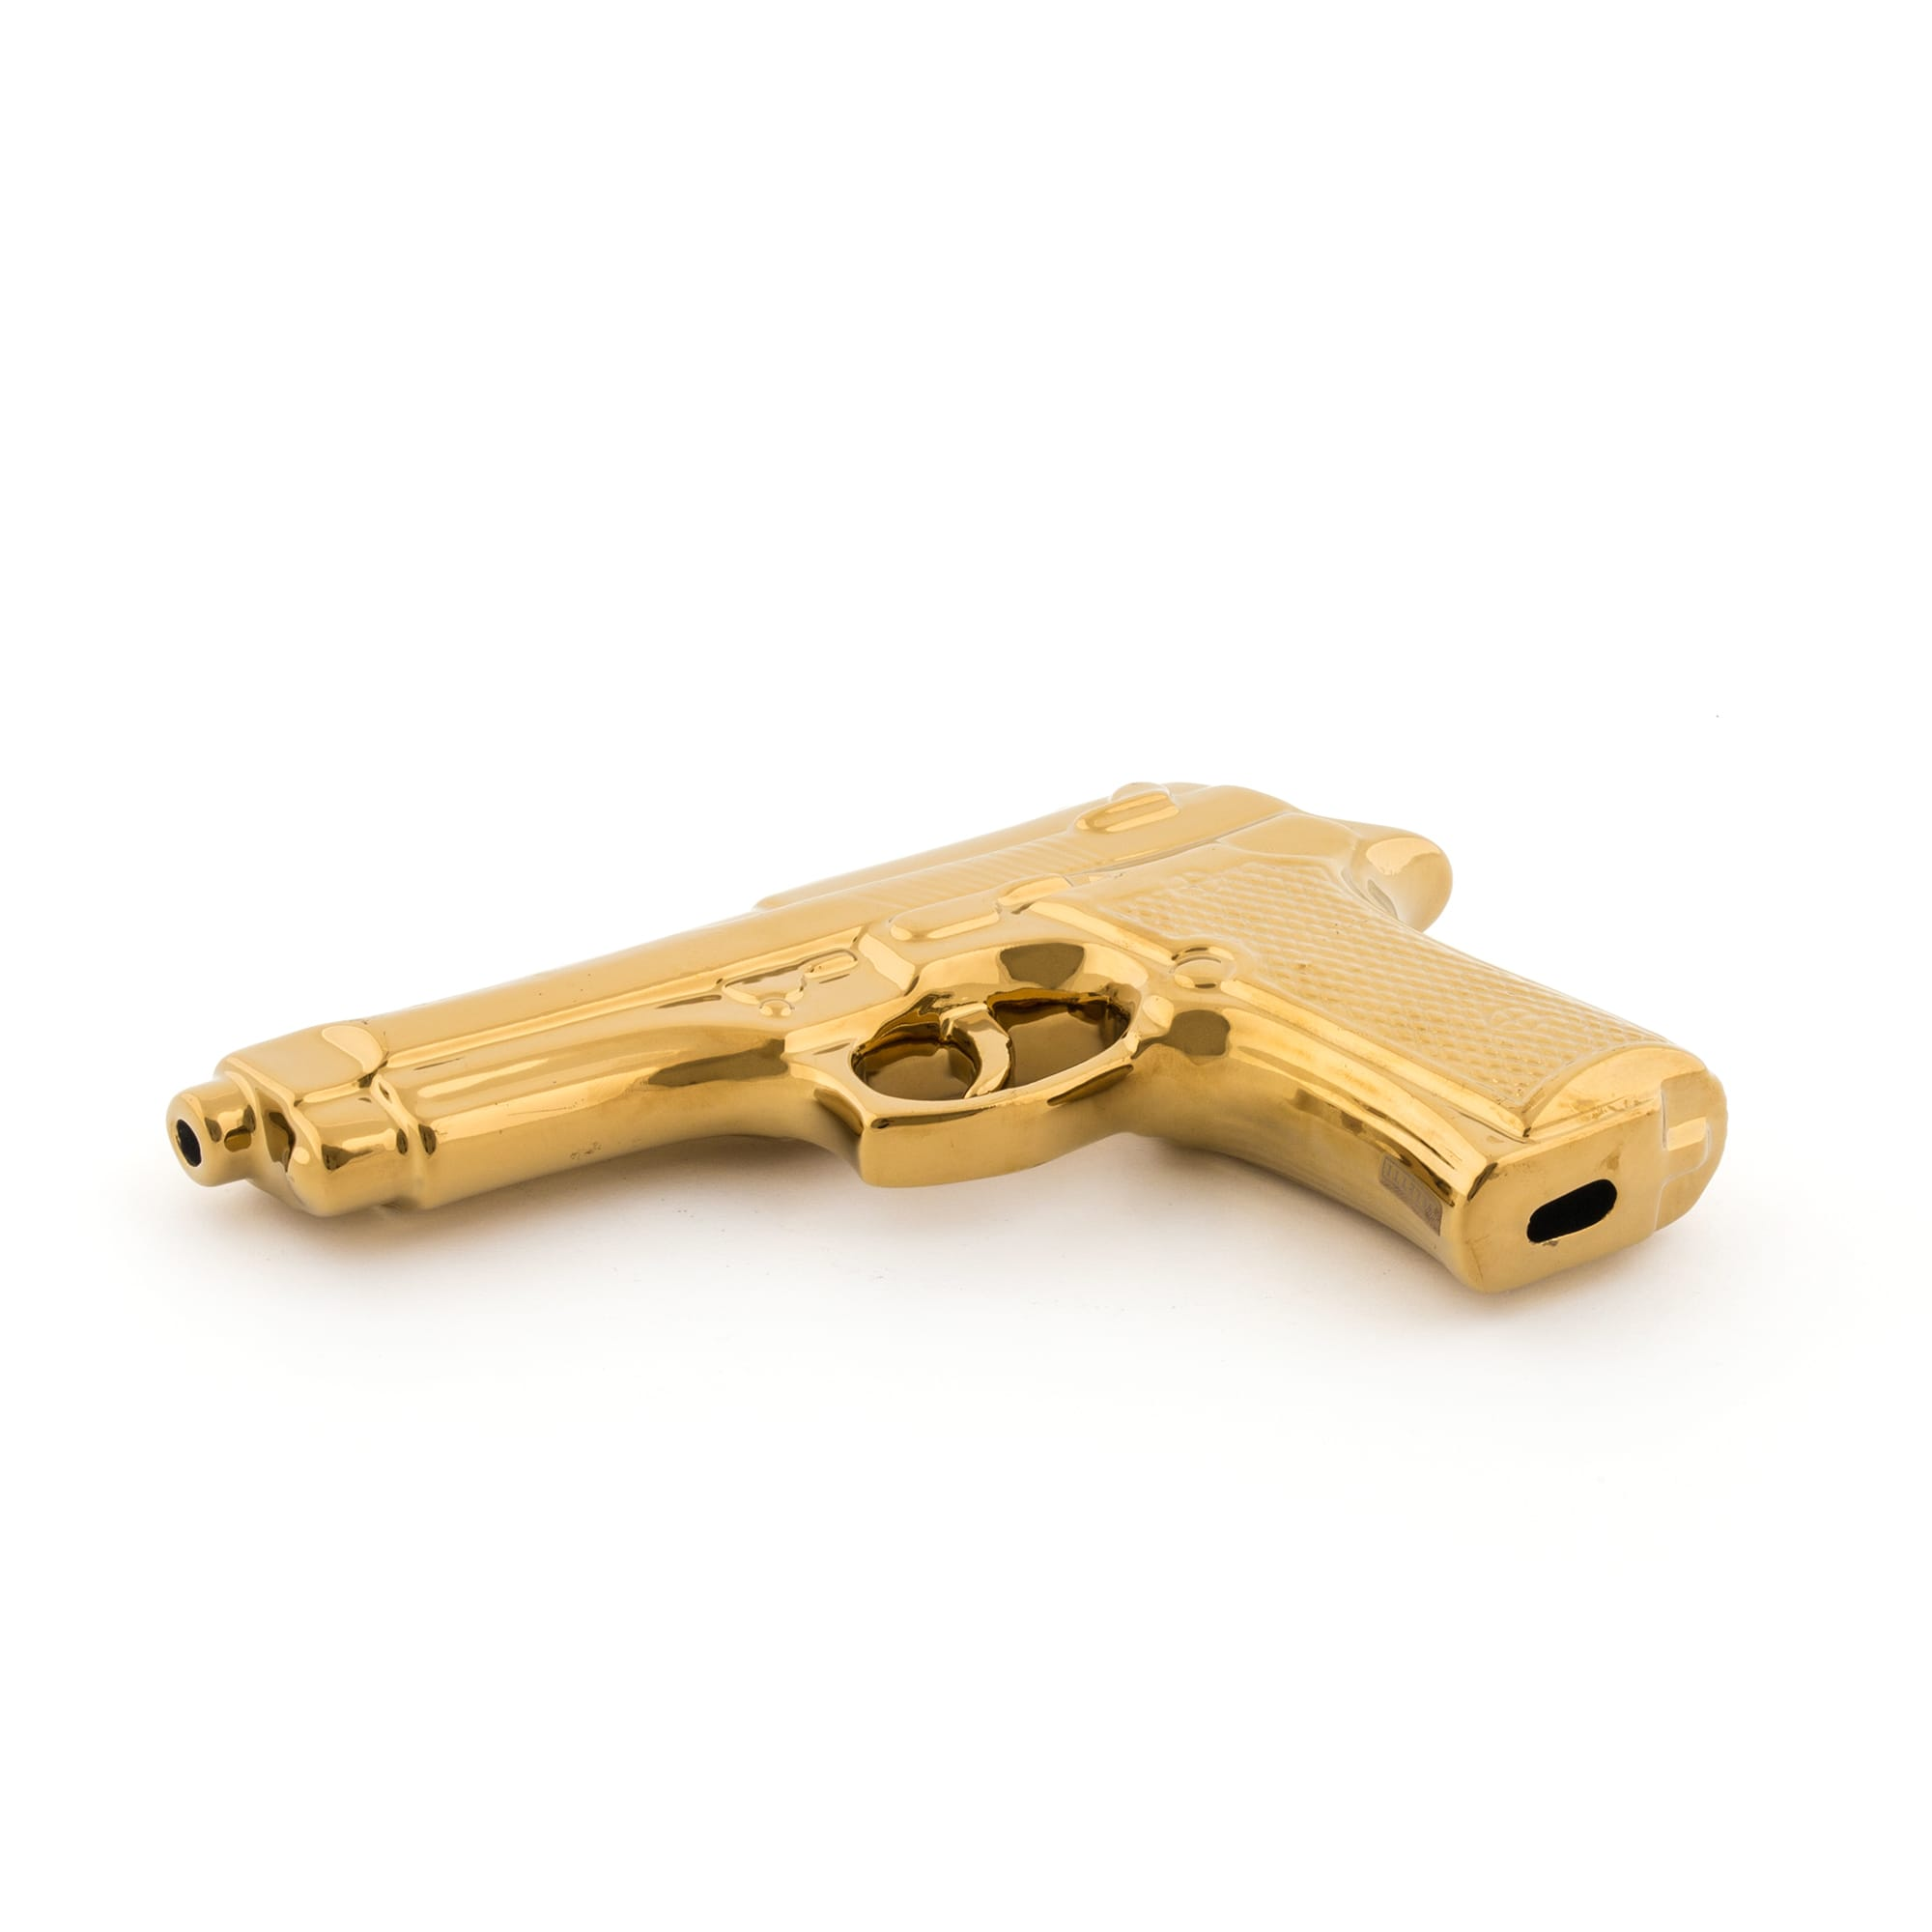 Dekoration, Memorabilia My Gun Gold Edition - Bild 1